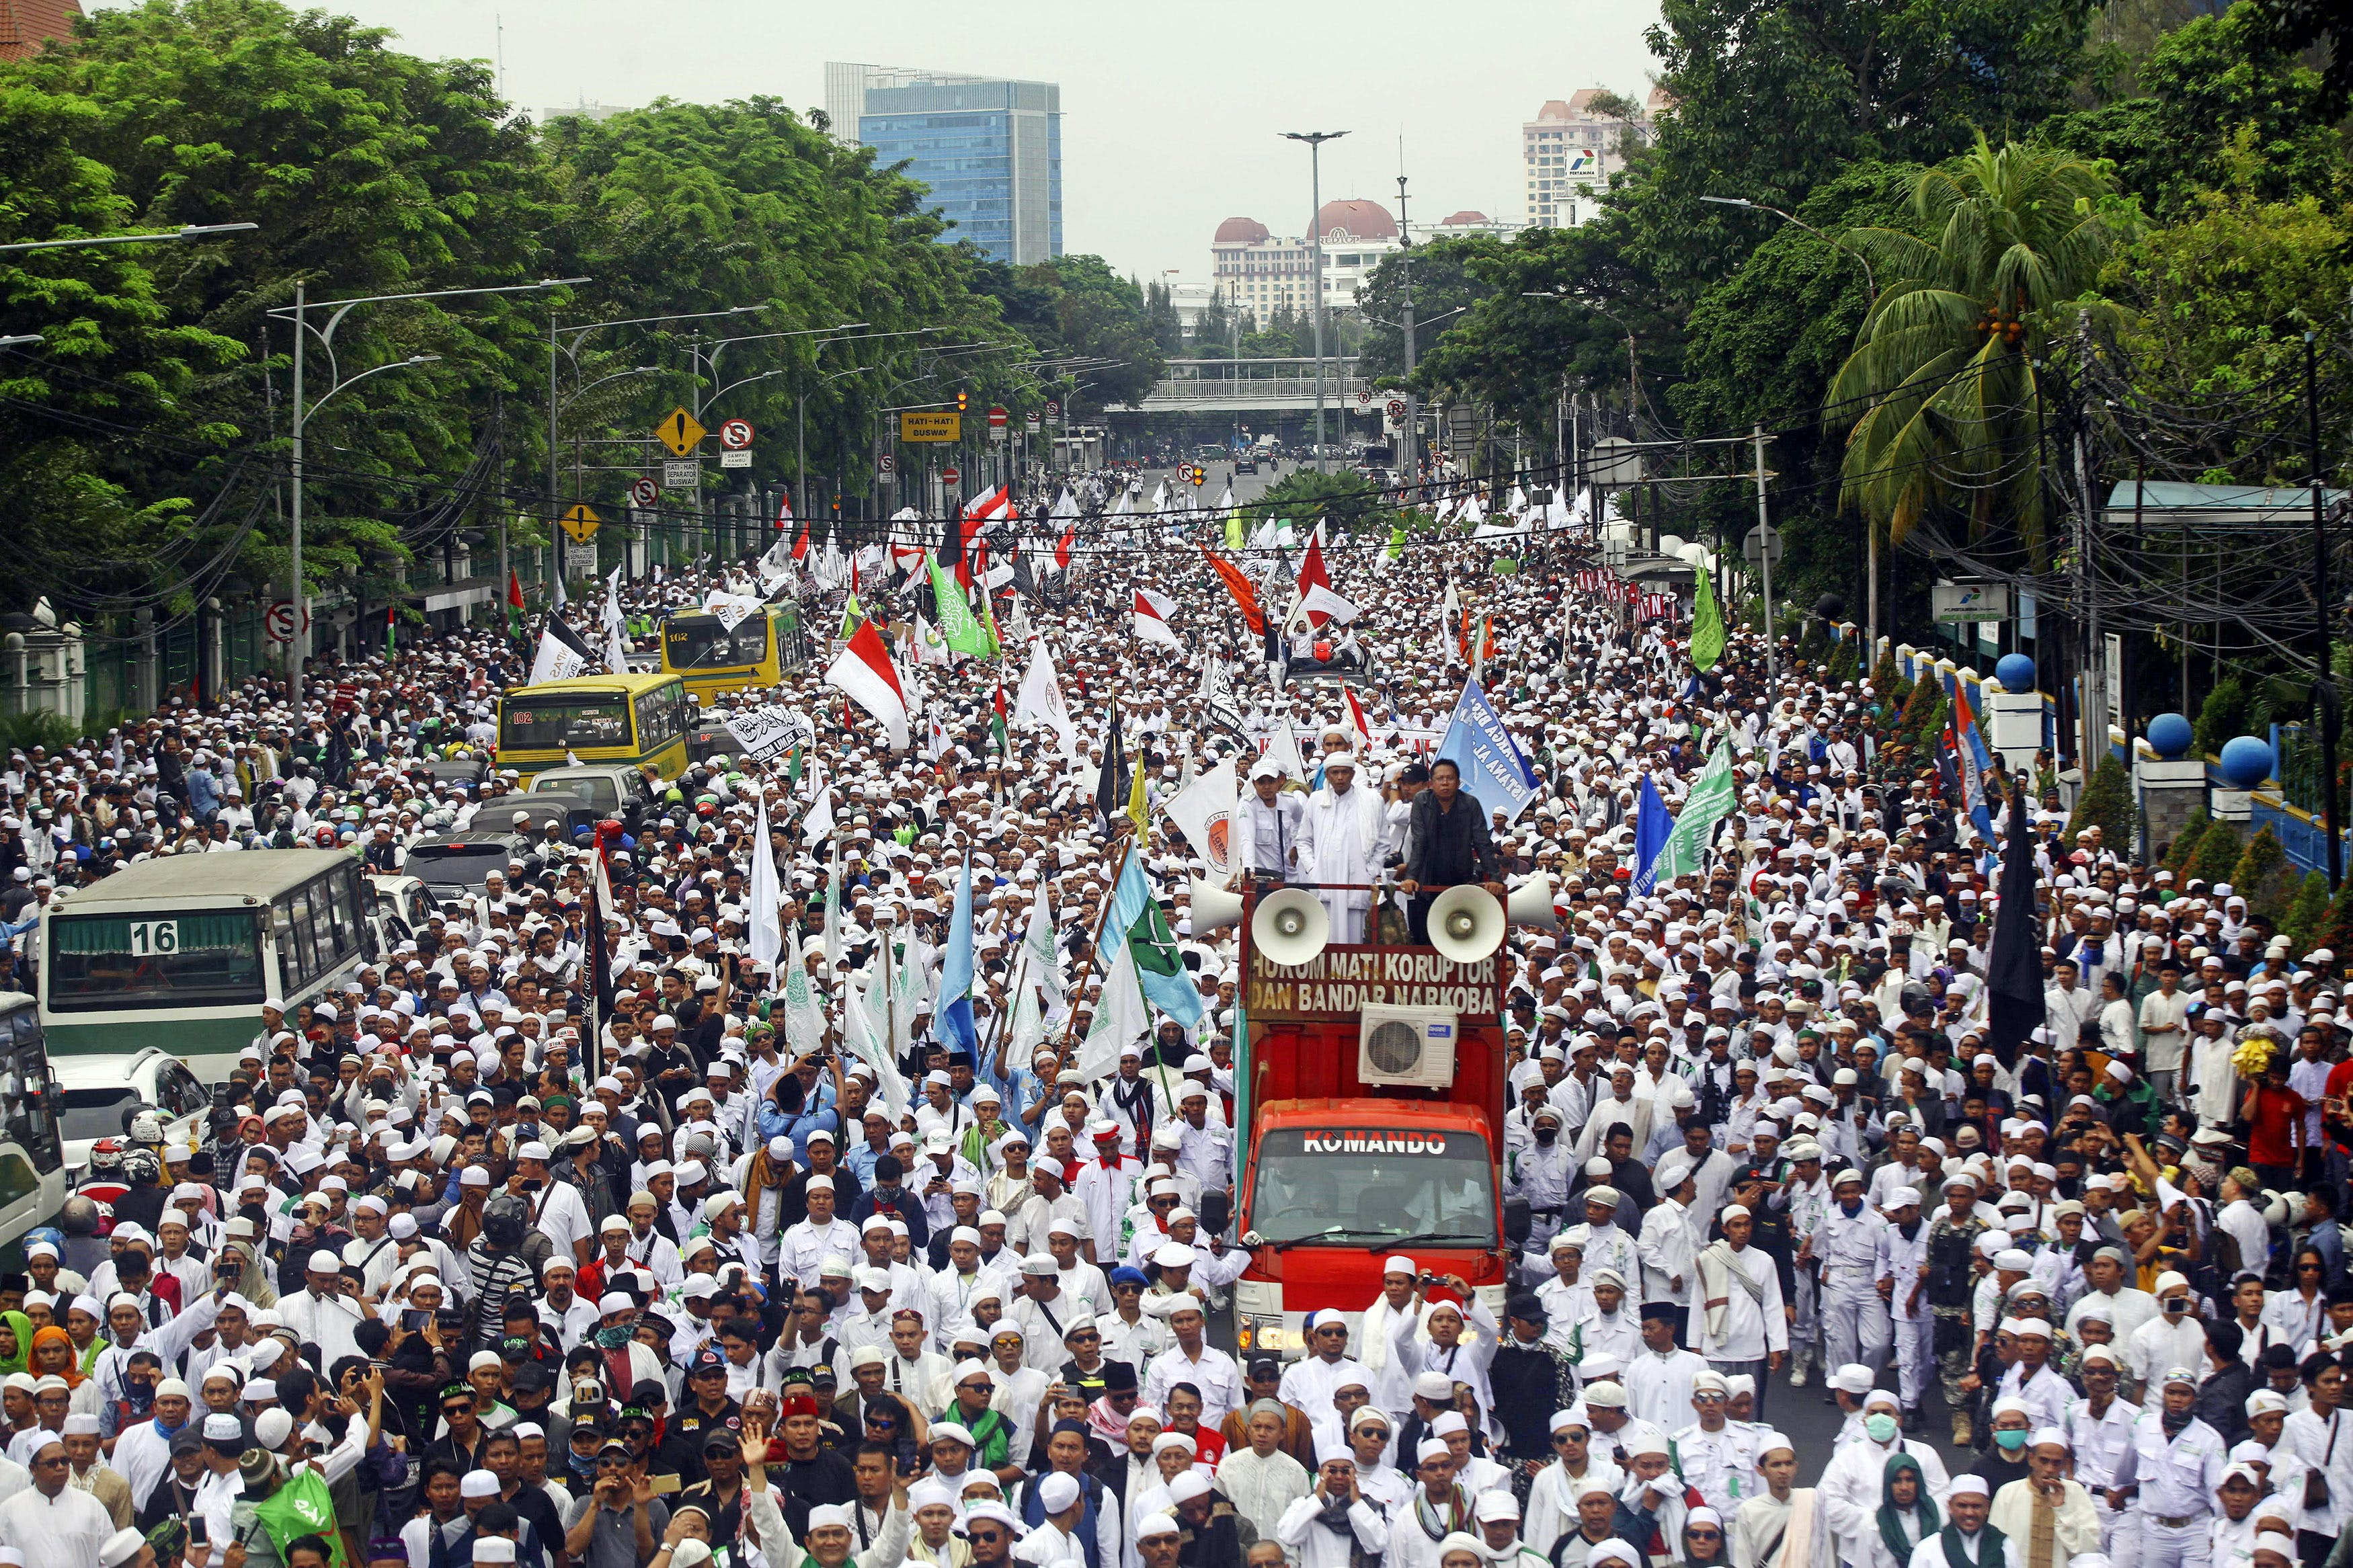 "JAKARTA, INDONESIA - OCTOBER 14 : Thousands of the hardline Islamic Defenders Front (FPI) member take part in a protest in Jakarta, Indonesia, on October 14, 2016 to show their disapproval for Governor Basuki Tjahaja Purnama, better known by his nickname ""Ahok"", after the governors controversial purportedly anti-Islamic speech. Although Jakarta governor Ahok was quoted out of context giving a speech that was interpreted by hardliners as anti-Islamic and blasphemy in Jakarta earlier this month, the Islamic Defenders Front (FPI) group are staging a large protest to show their disdain for the politician. (Photo by Agoes Rudianto/Anadolu Agency/Getty Images)"